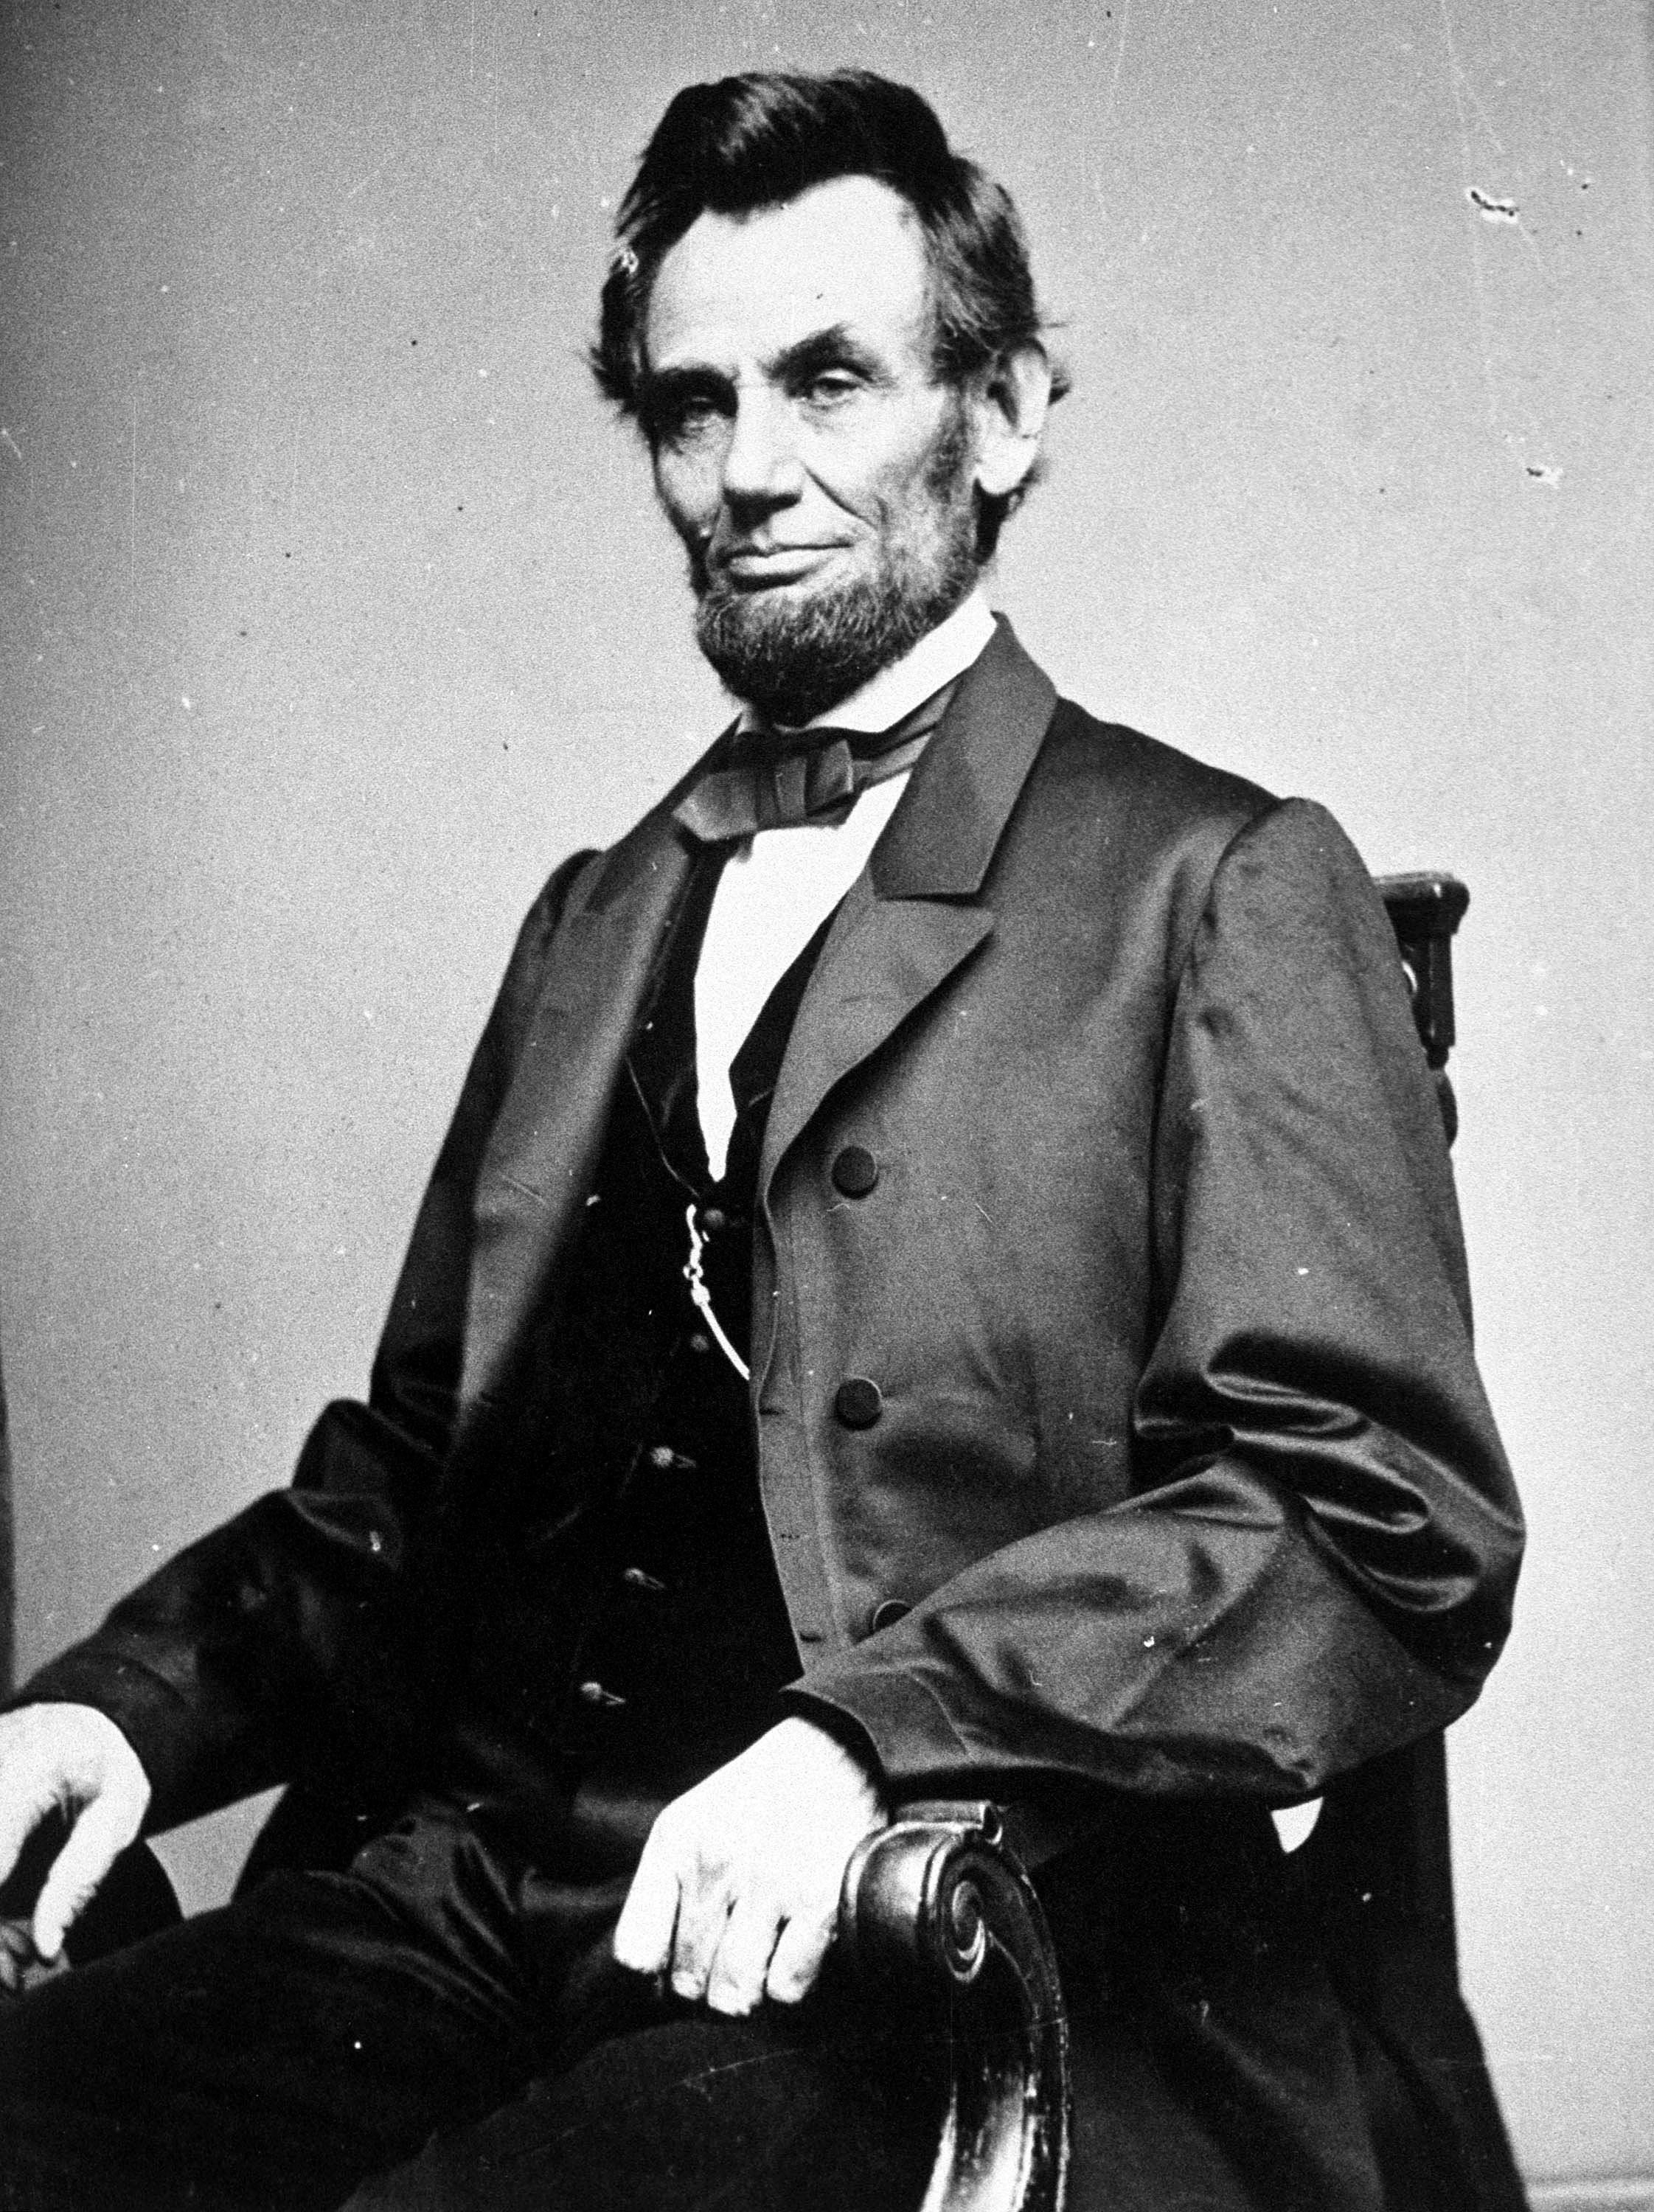 377869 16: (FILE PHOTO) A photographic portrait is displayed showing Abraham Lincoln, the 16th president of the United States. Retired physician and medical historian, Norbert Hirschhorn wrote a study that suggests Lincoln''s use of a medication in the form of a blue pill for depression contained enough mercury to cause uncontrollable bouts of anger in the President and could have eventually killed him had he not stopped taking the pills. (Photo by Hulton/Archive/Getty Images)